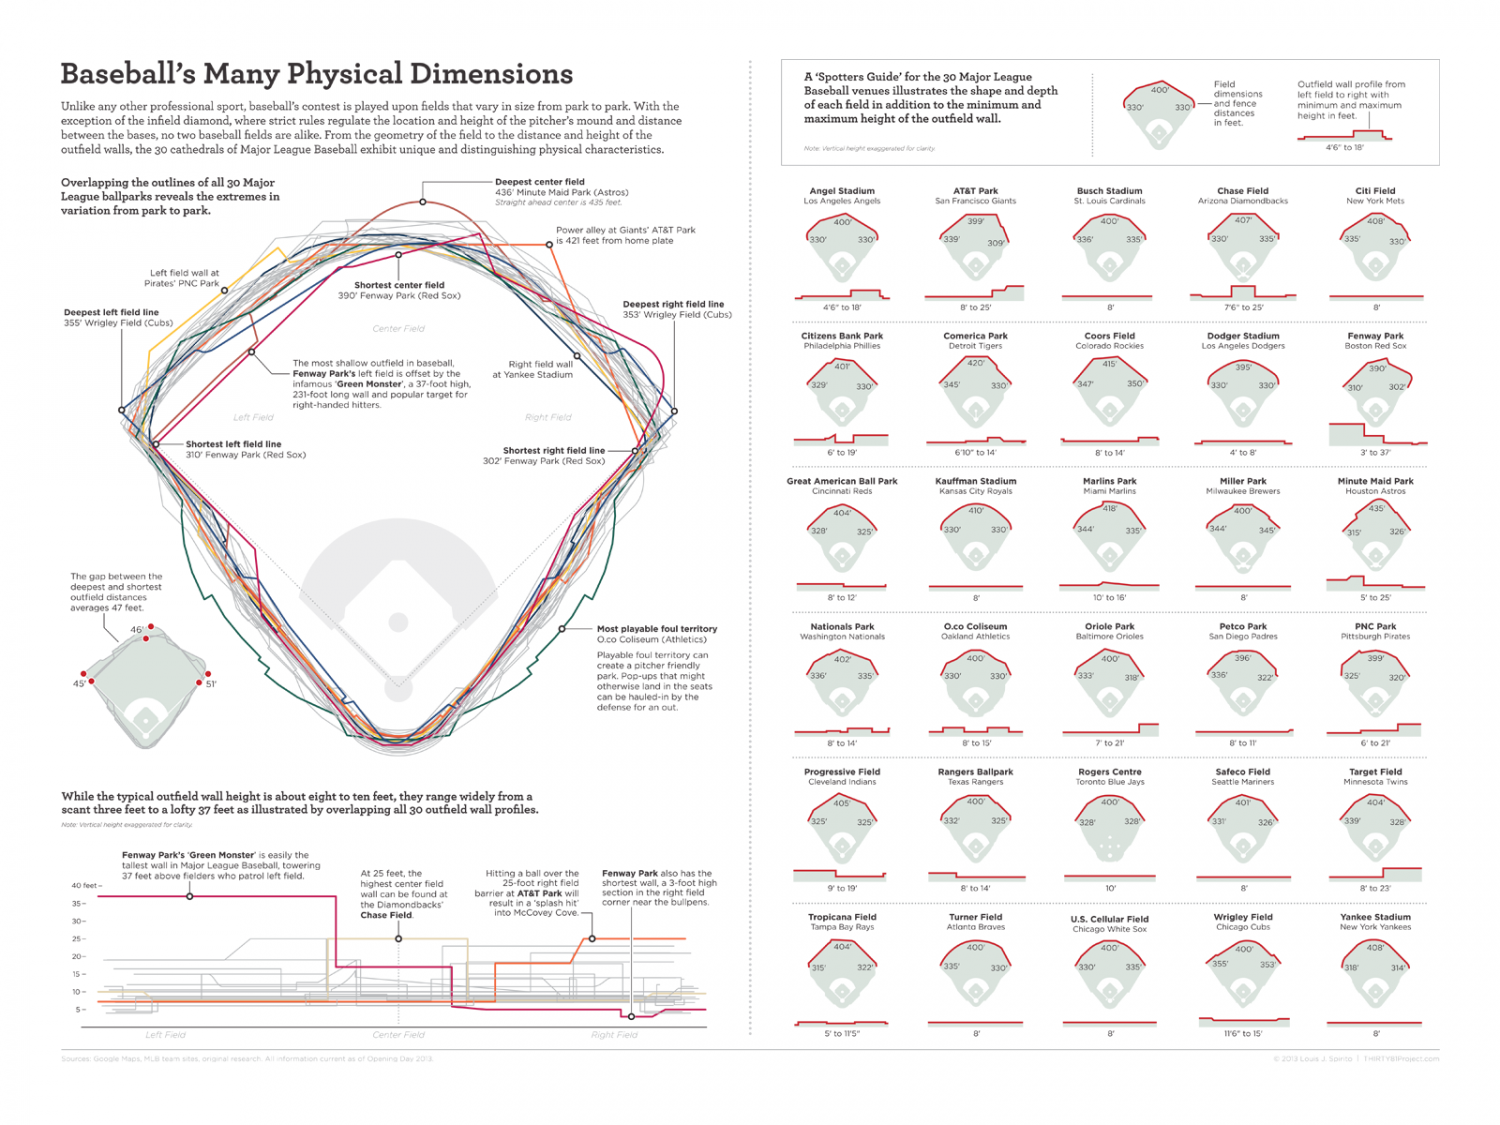 Baseball's Many Physical Dimensions  Infographic